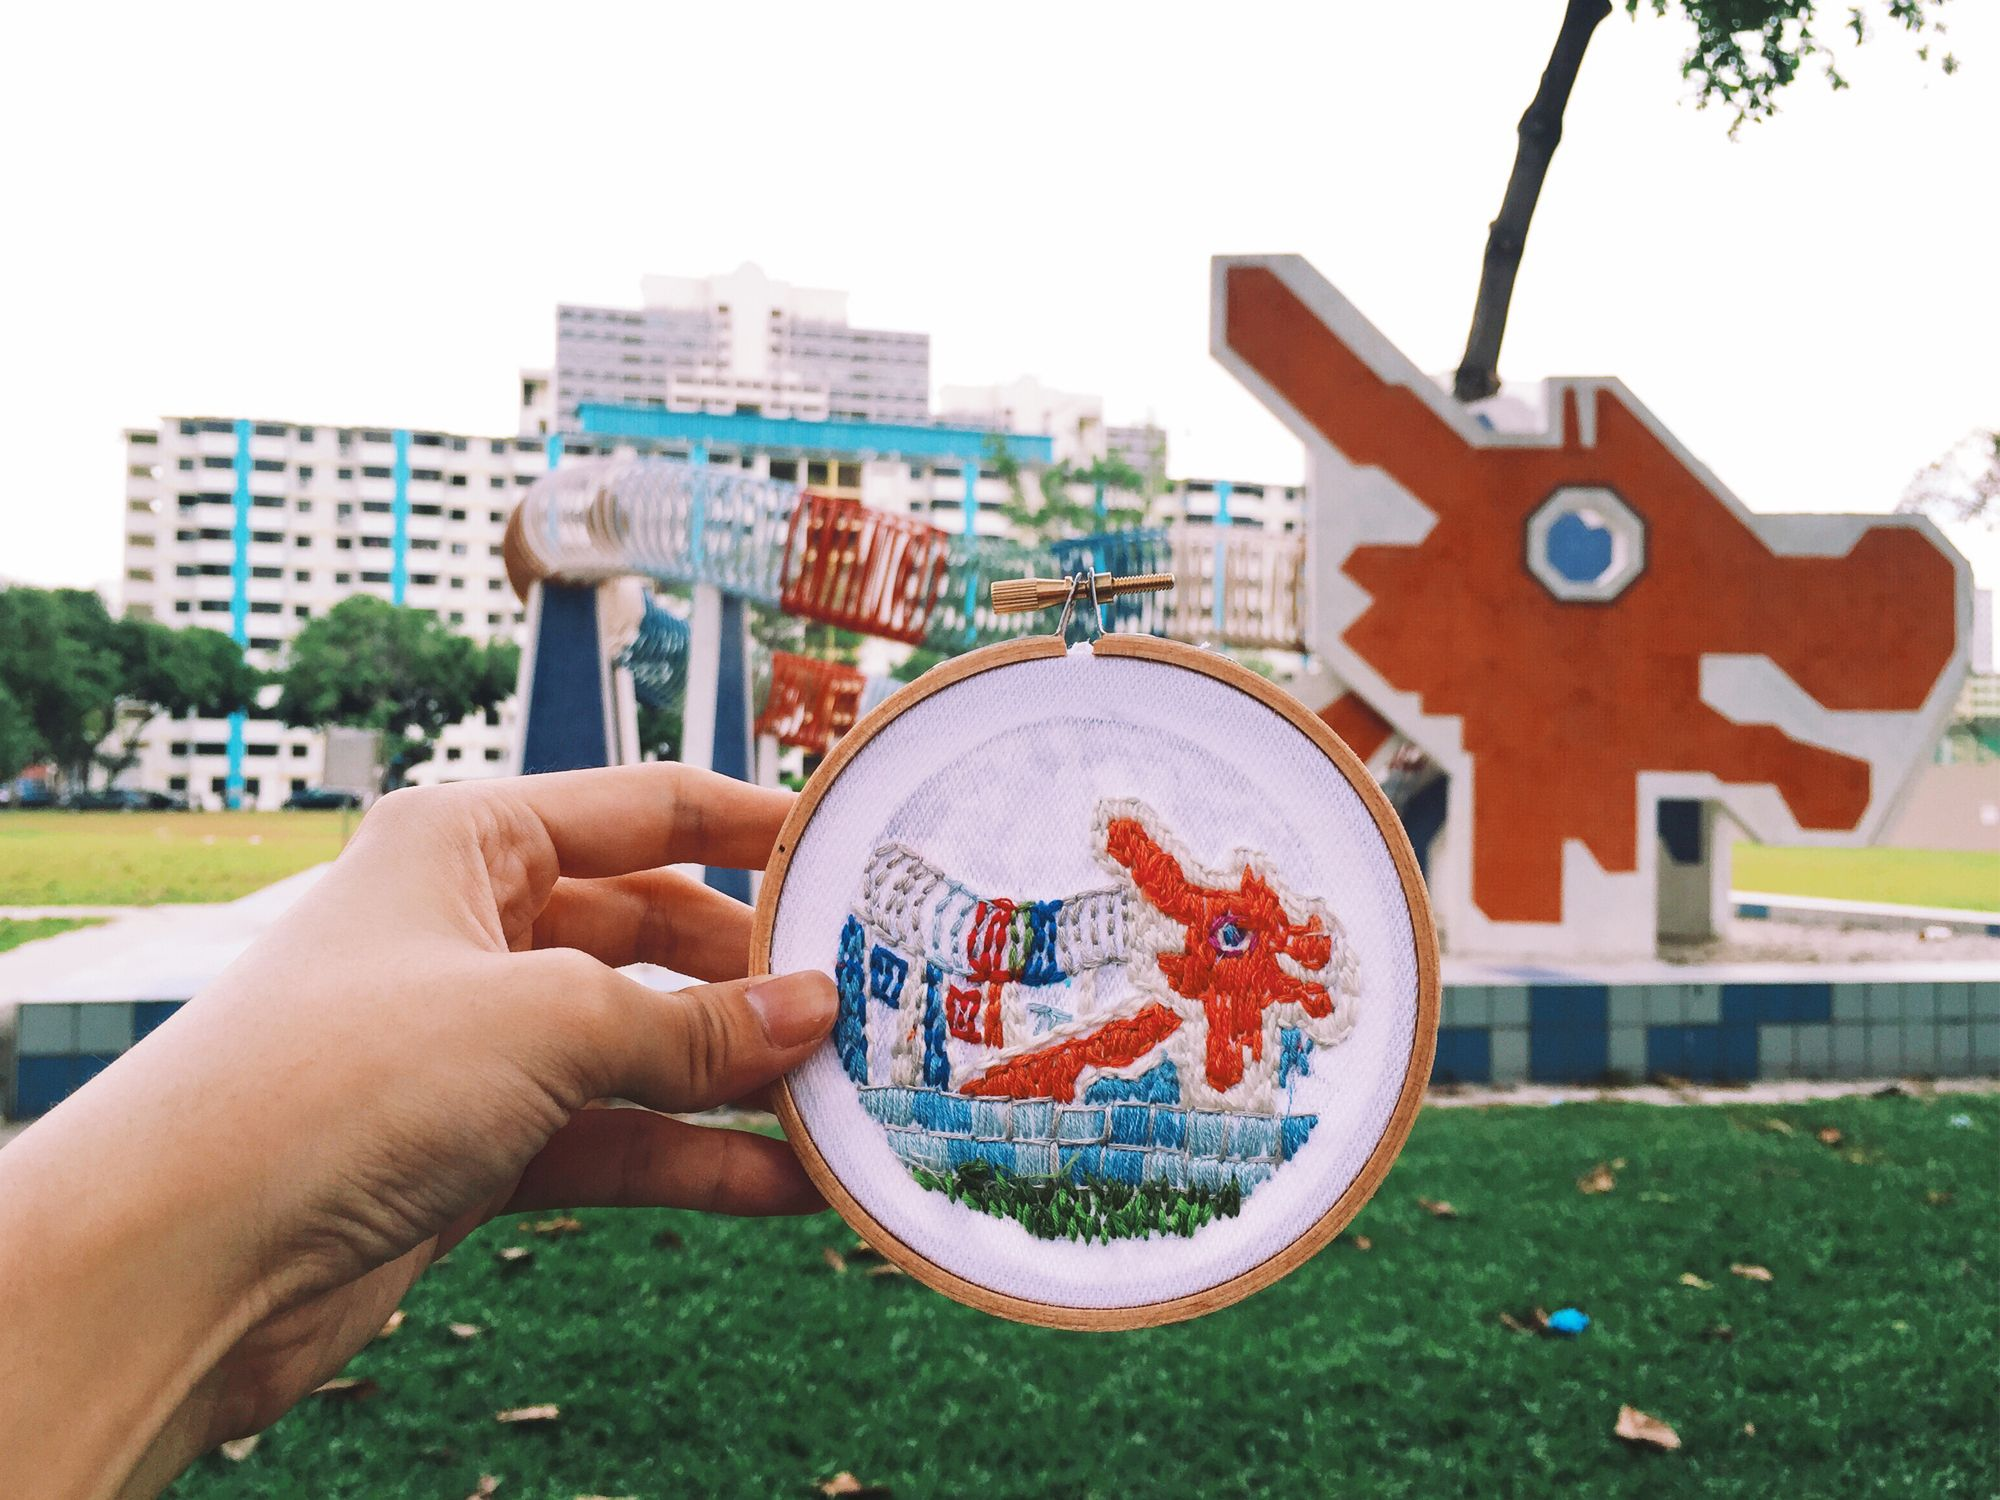 A snapshot of the iconic playground at Toa Payoh, part of Local embroidery artisan Teresa Lim's Sew Wanderlust series (Image: Teeteeheehee)